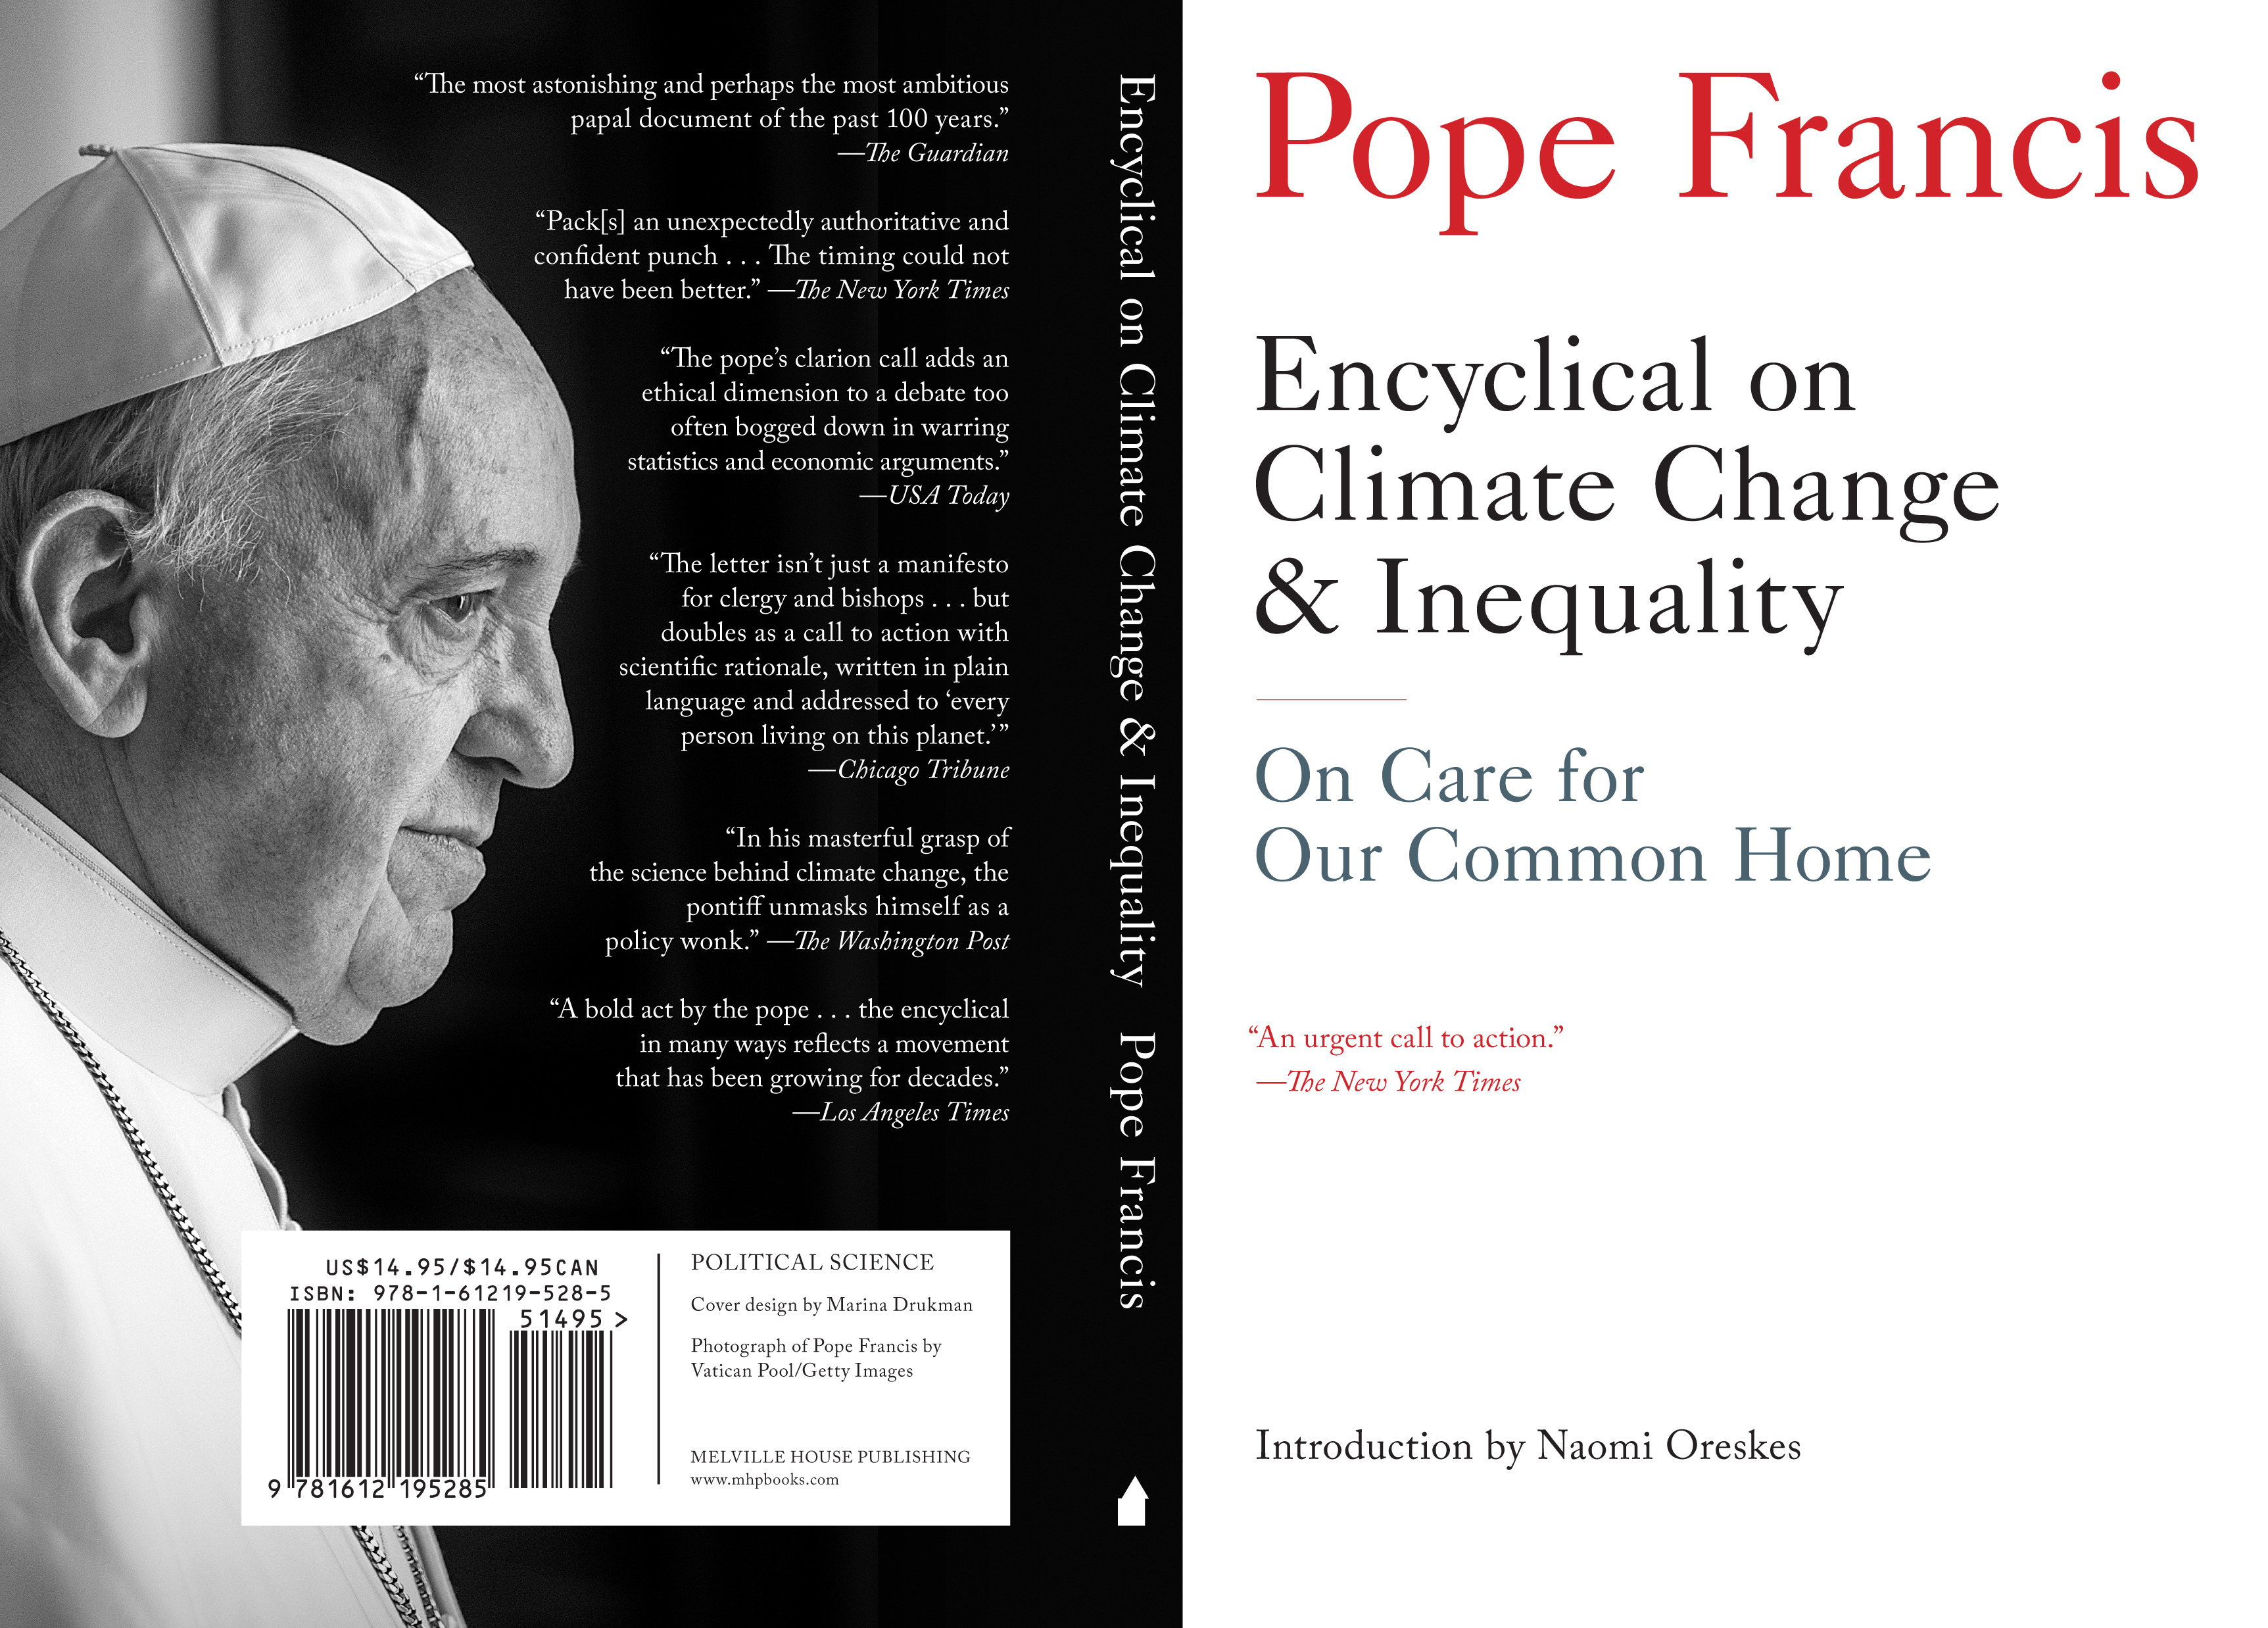 Encyclical cover spread